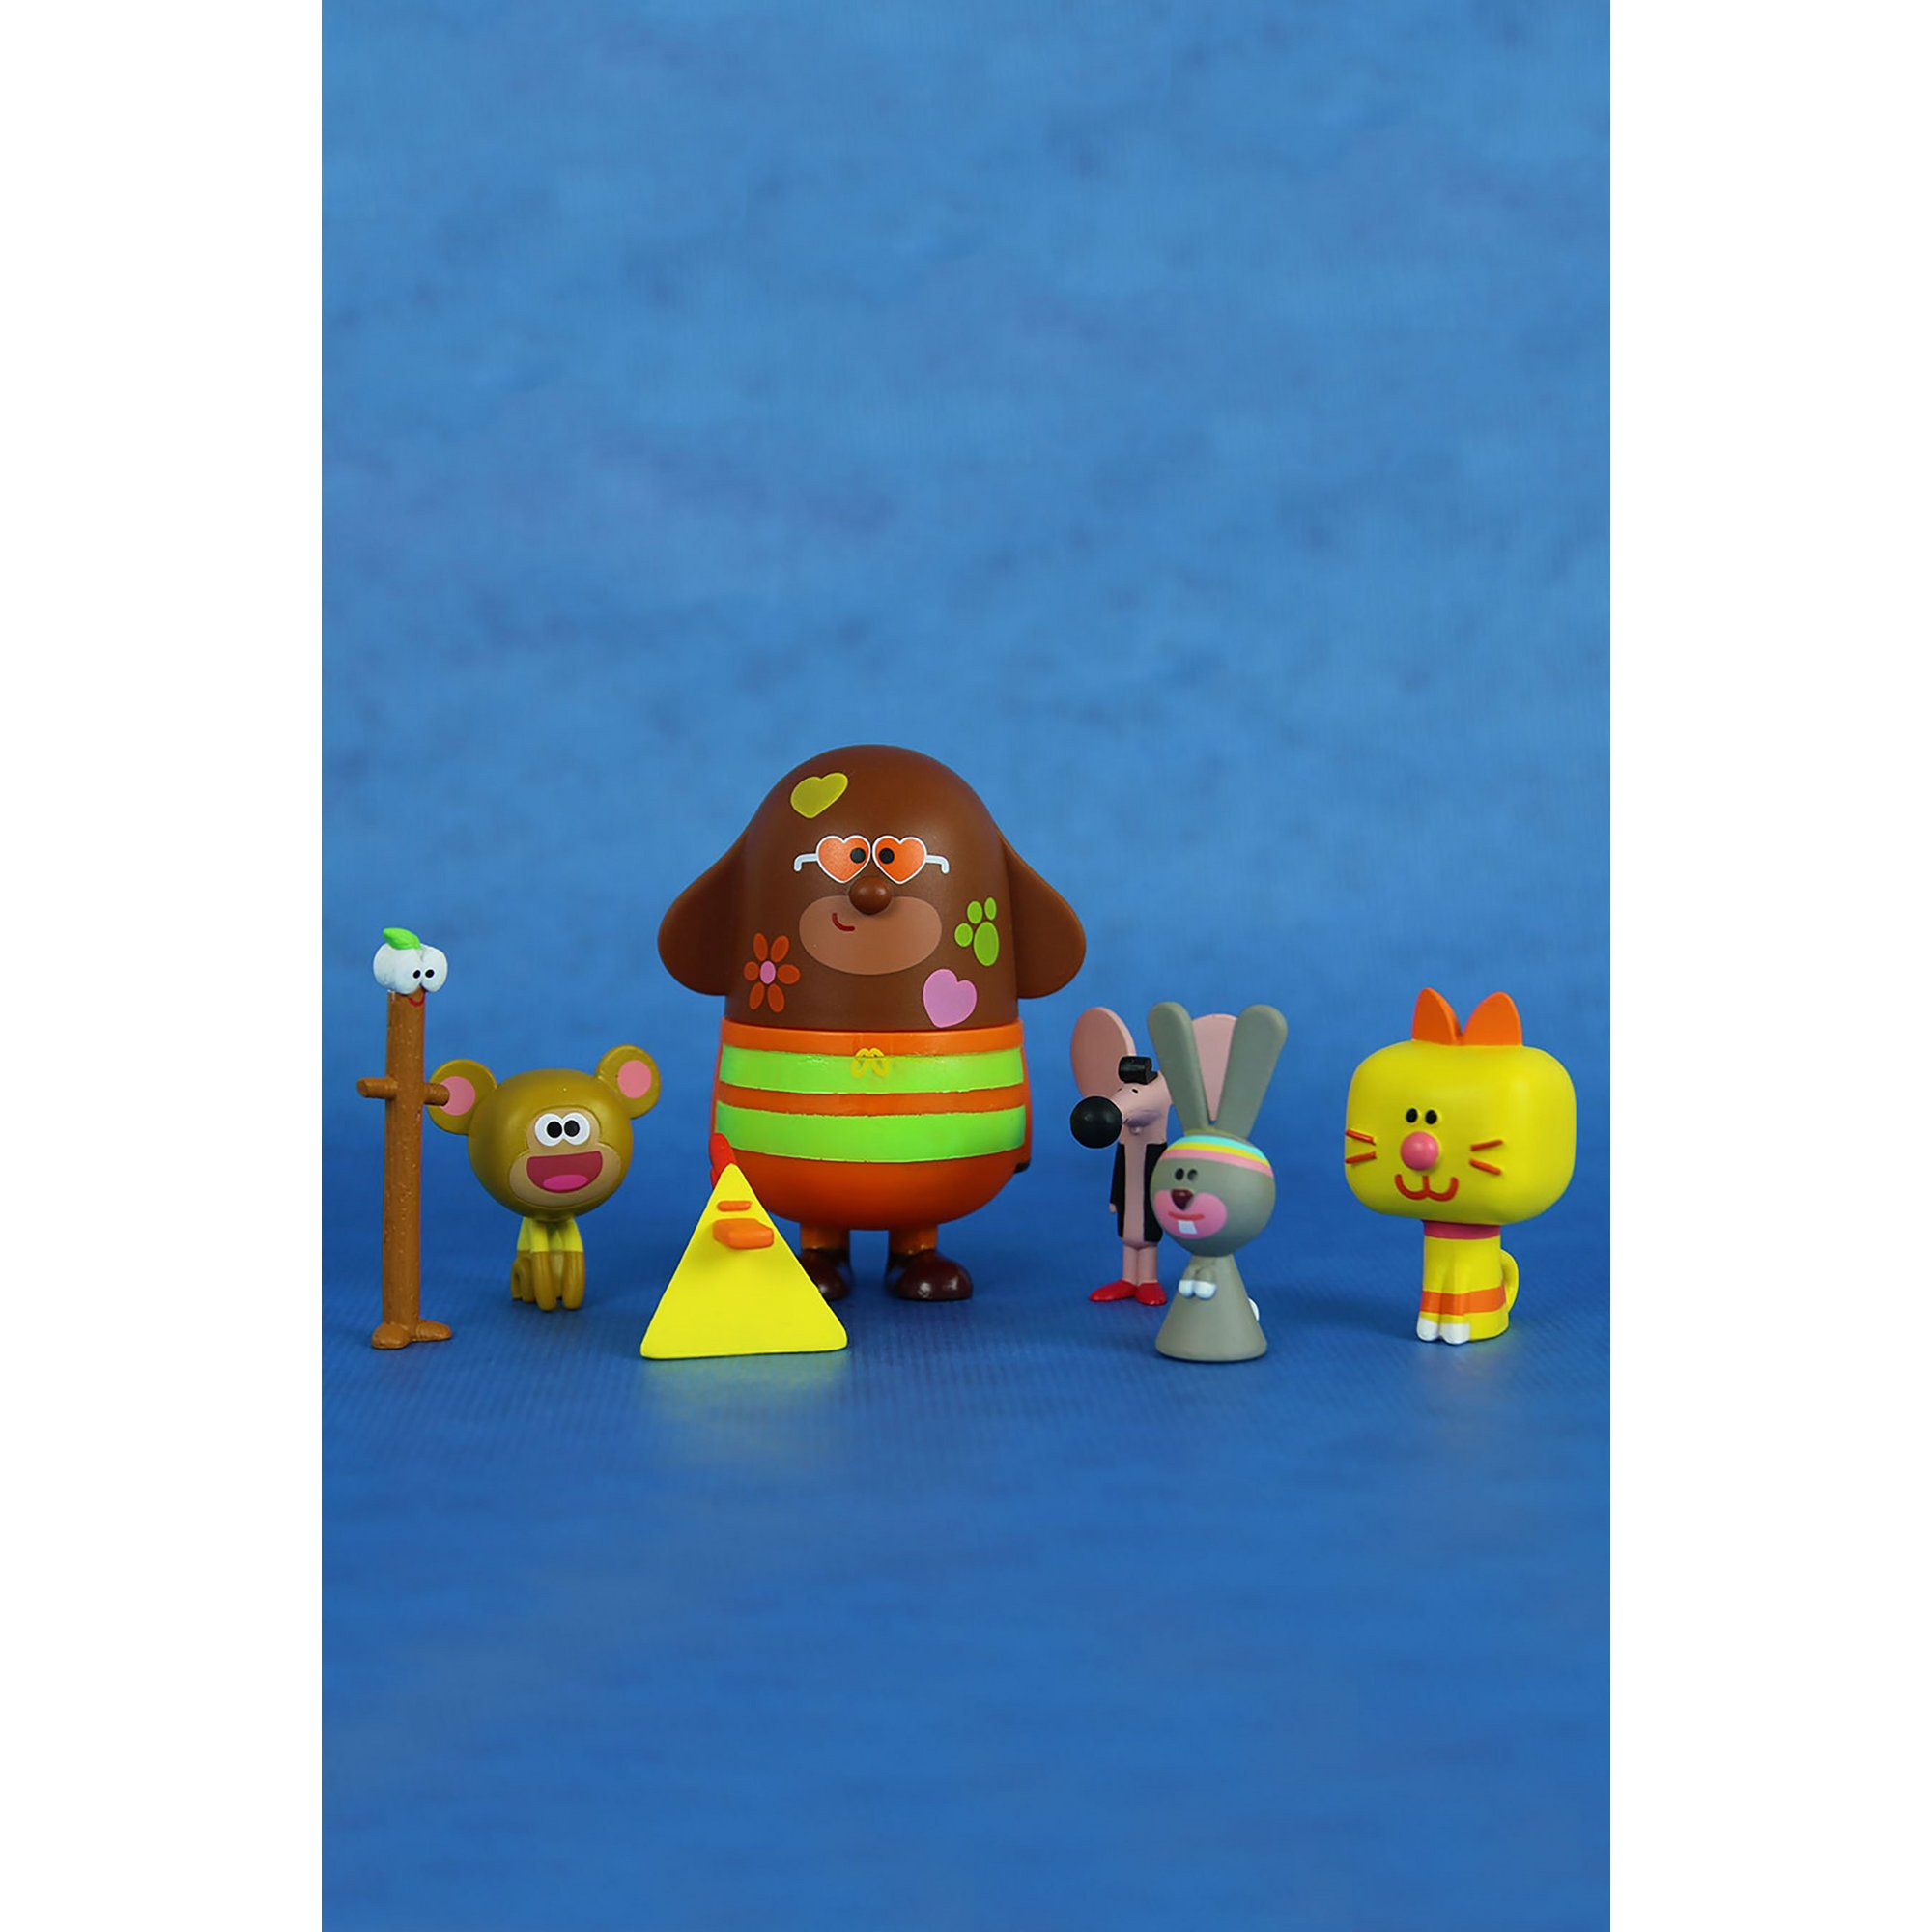 Image of Hey Duggee and Friends Figurine Set